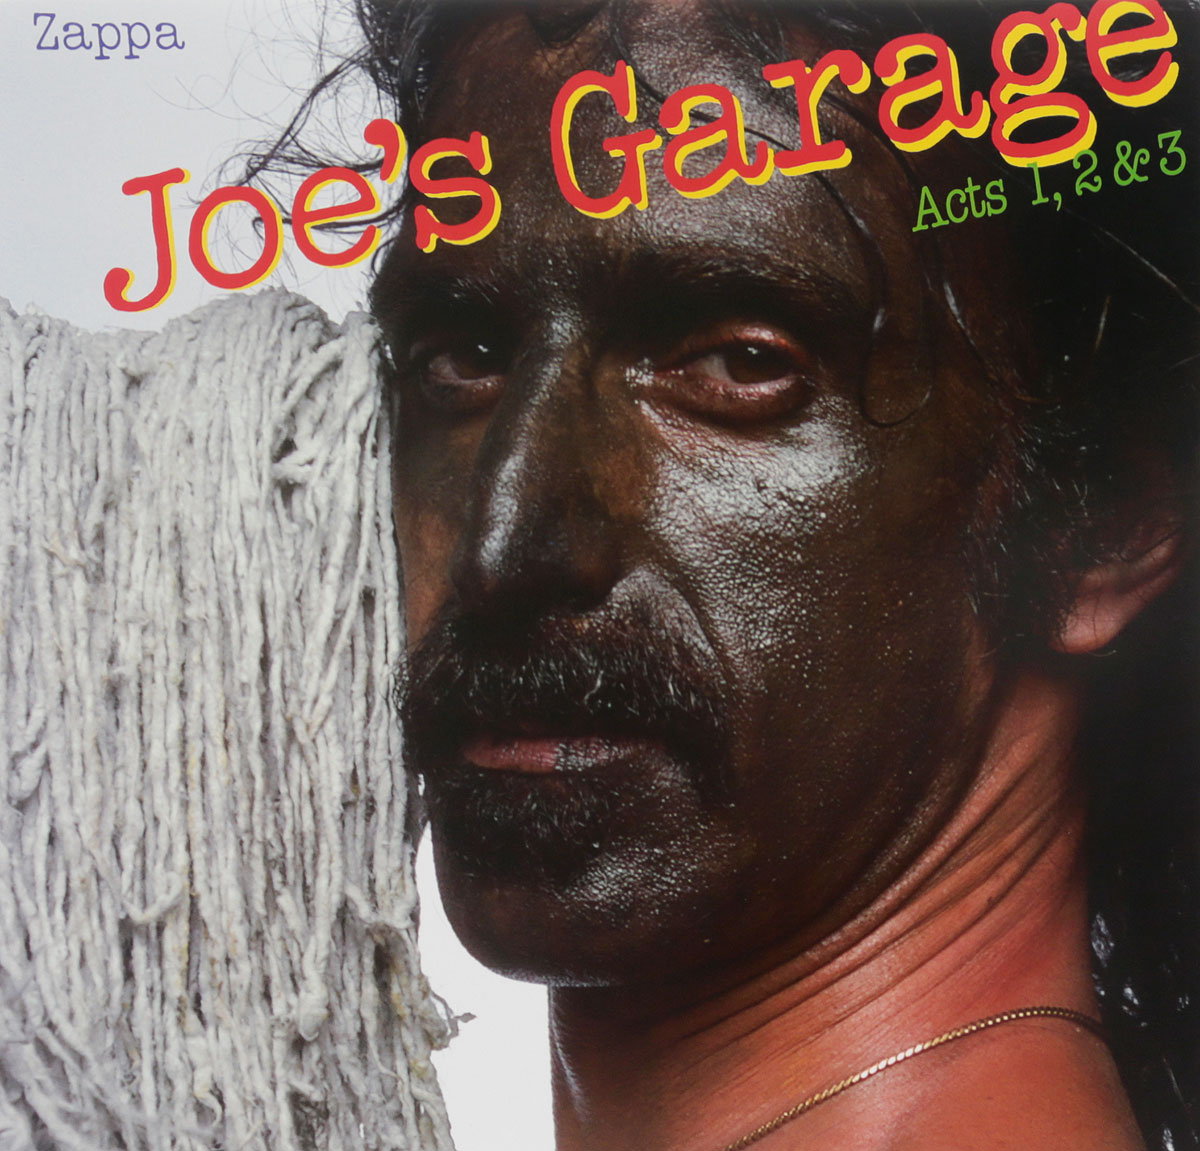 Фрэнк Заппа Frank Zappa. Joe's Garage. Acts 1, 2 & 3 (3 LP) 5pcs rc boat copper coupling motor shaft diameter converter connector adpater 3 17 3 2 2 3 4 5 6mm to 5 4 3 3 17 2 6 2 3mm